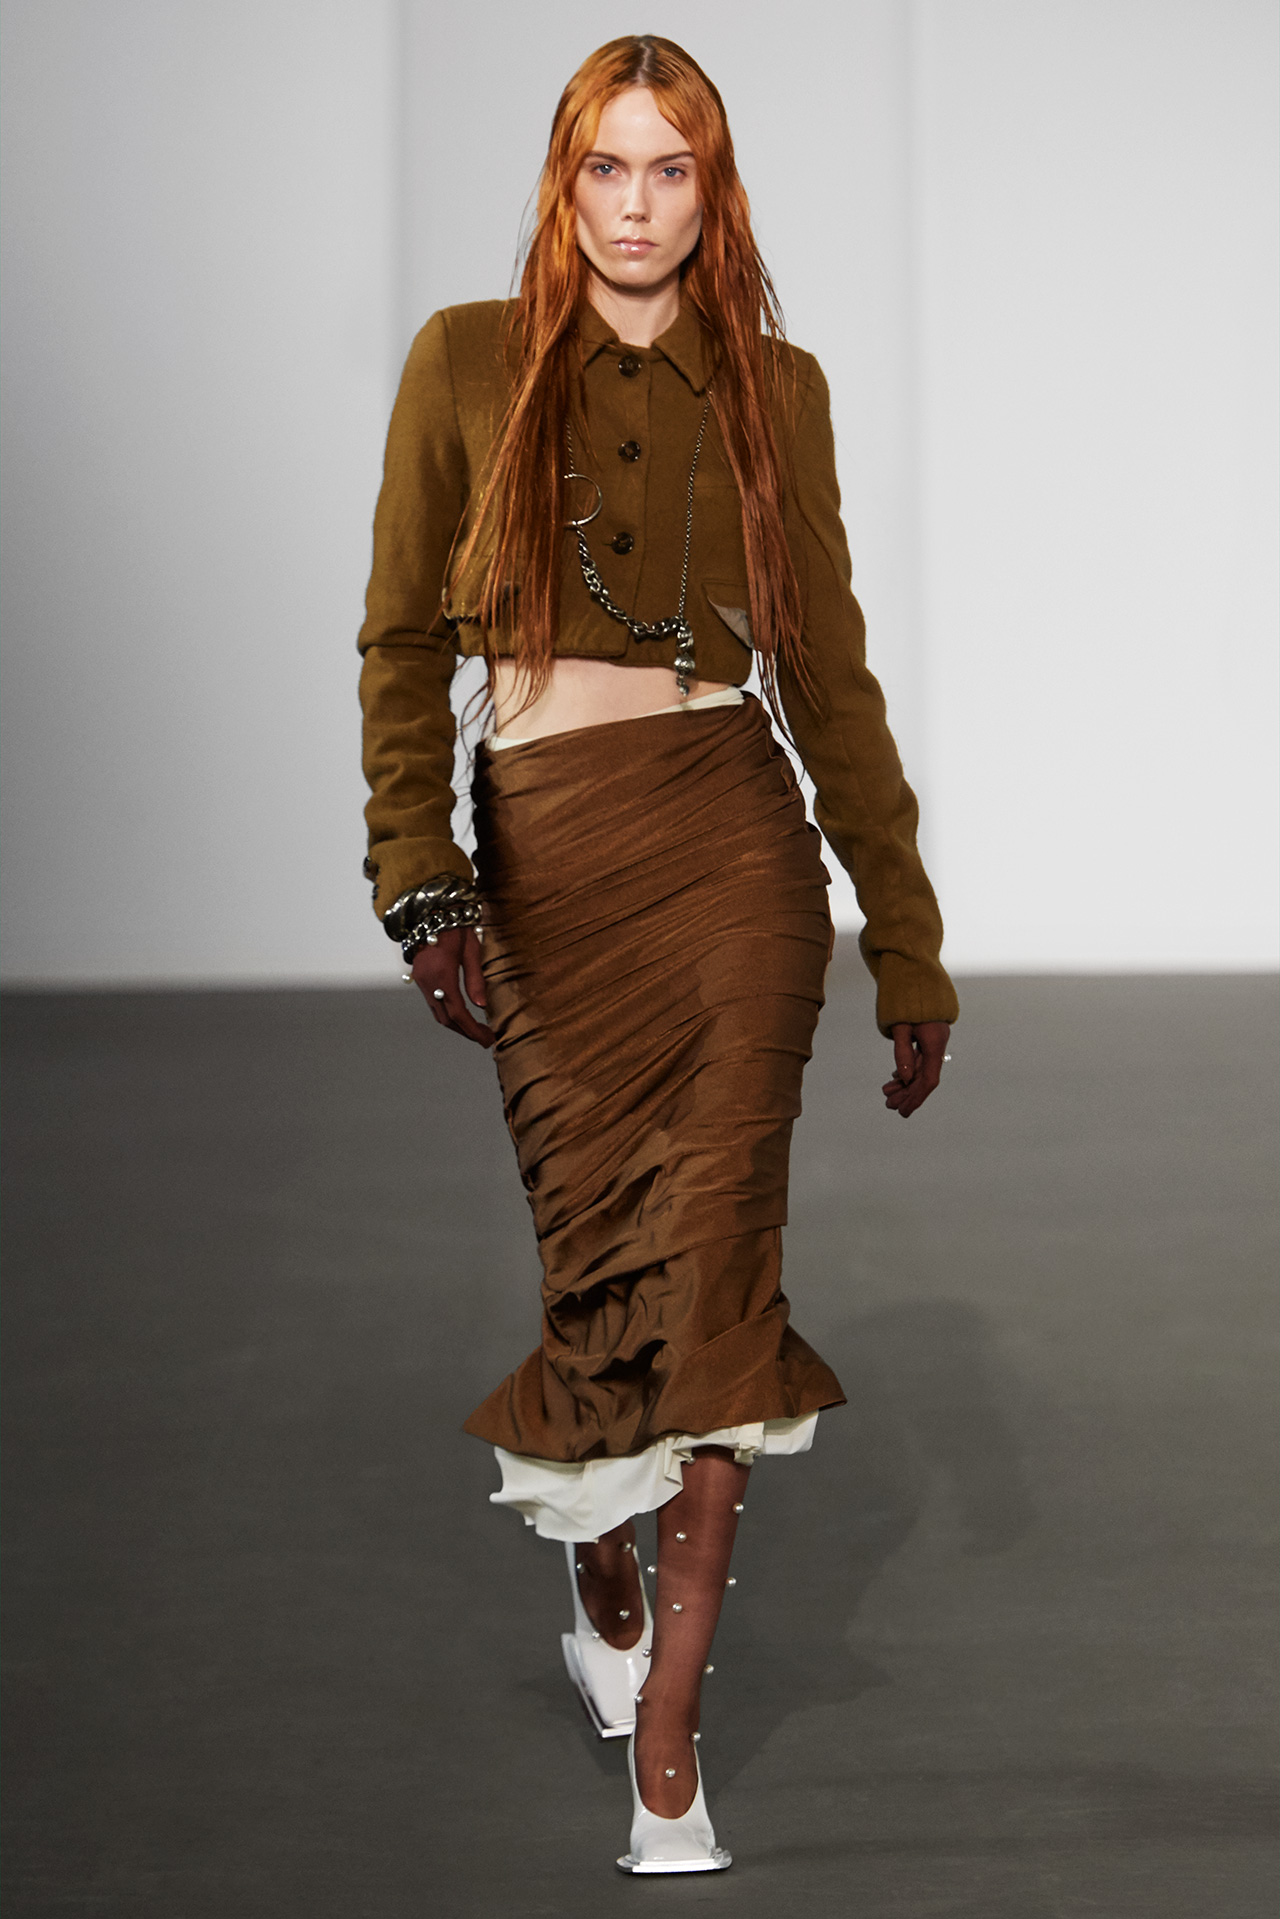 Look Fall/Winter 2020, image 29